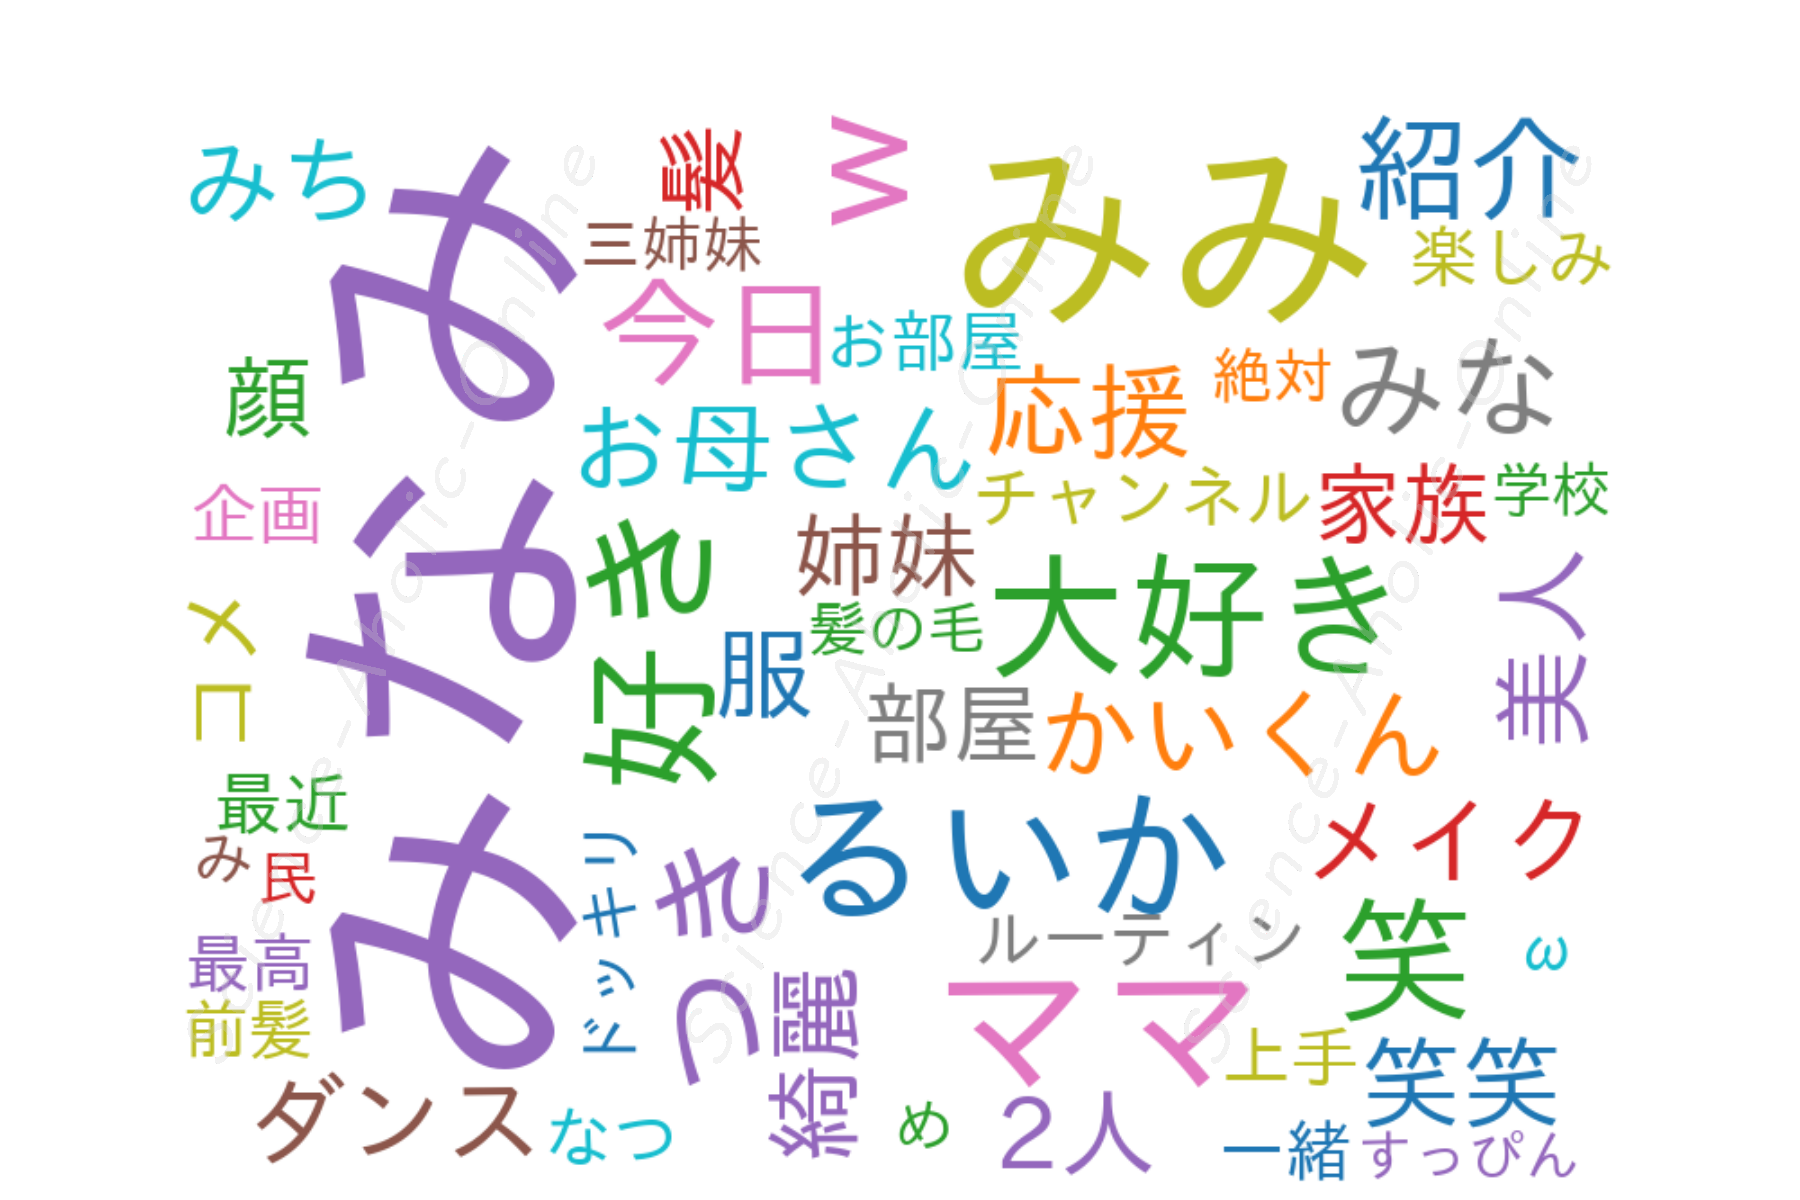 https://science-aholic-online.com/wp-content/uploads/2020/08/wordcloud_みなみチャンネル.png